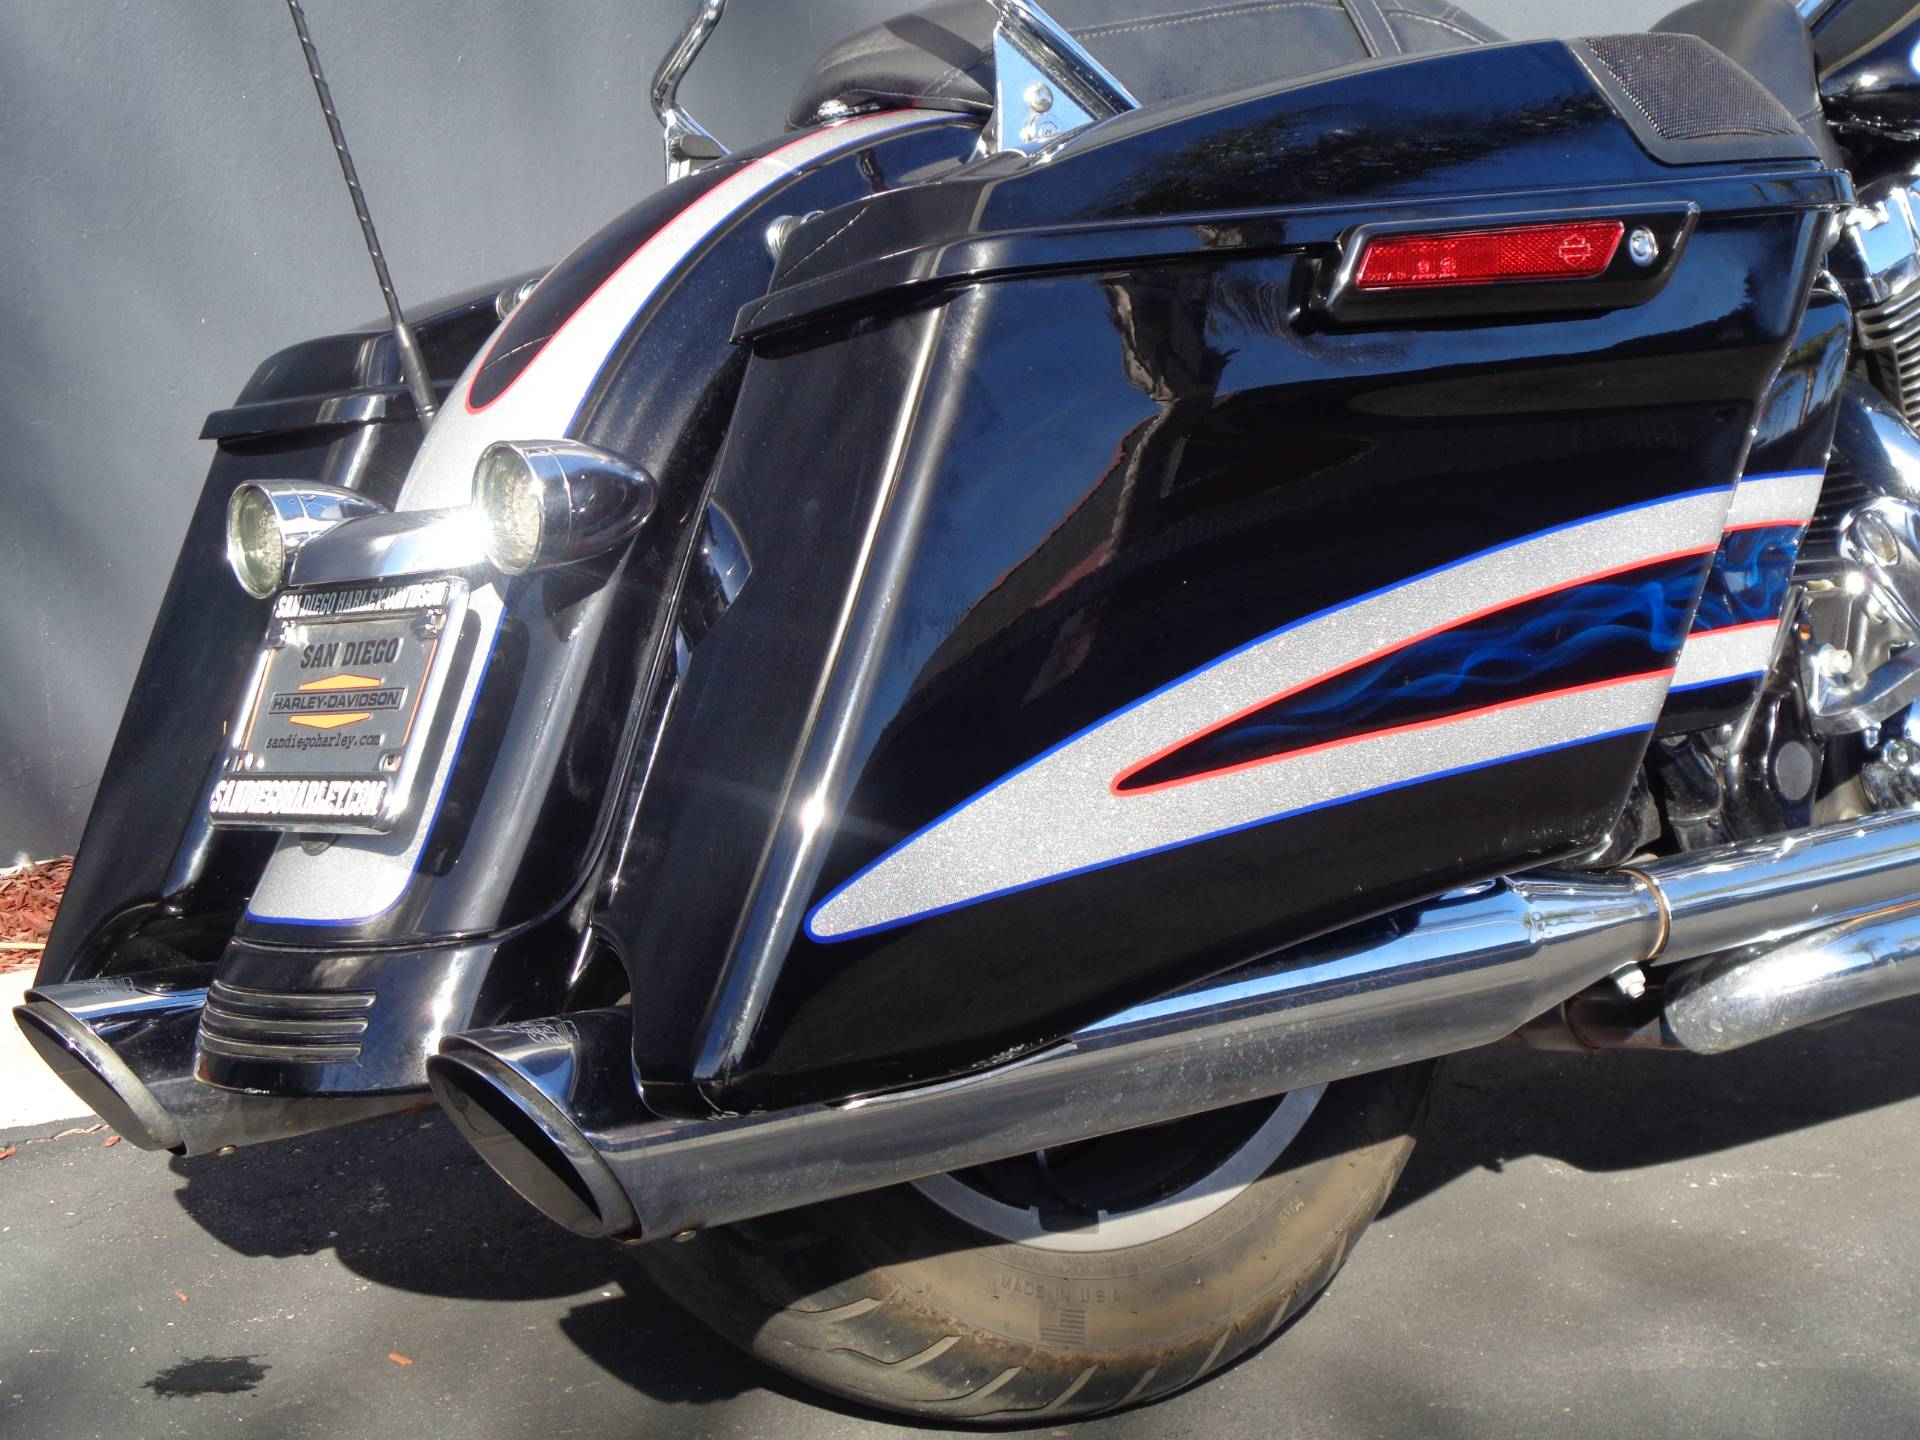 2014 Harley-Davidson Street Glide® Special in Chula Vista, California - Photo 5